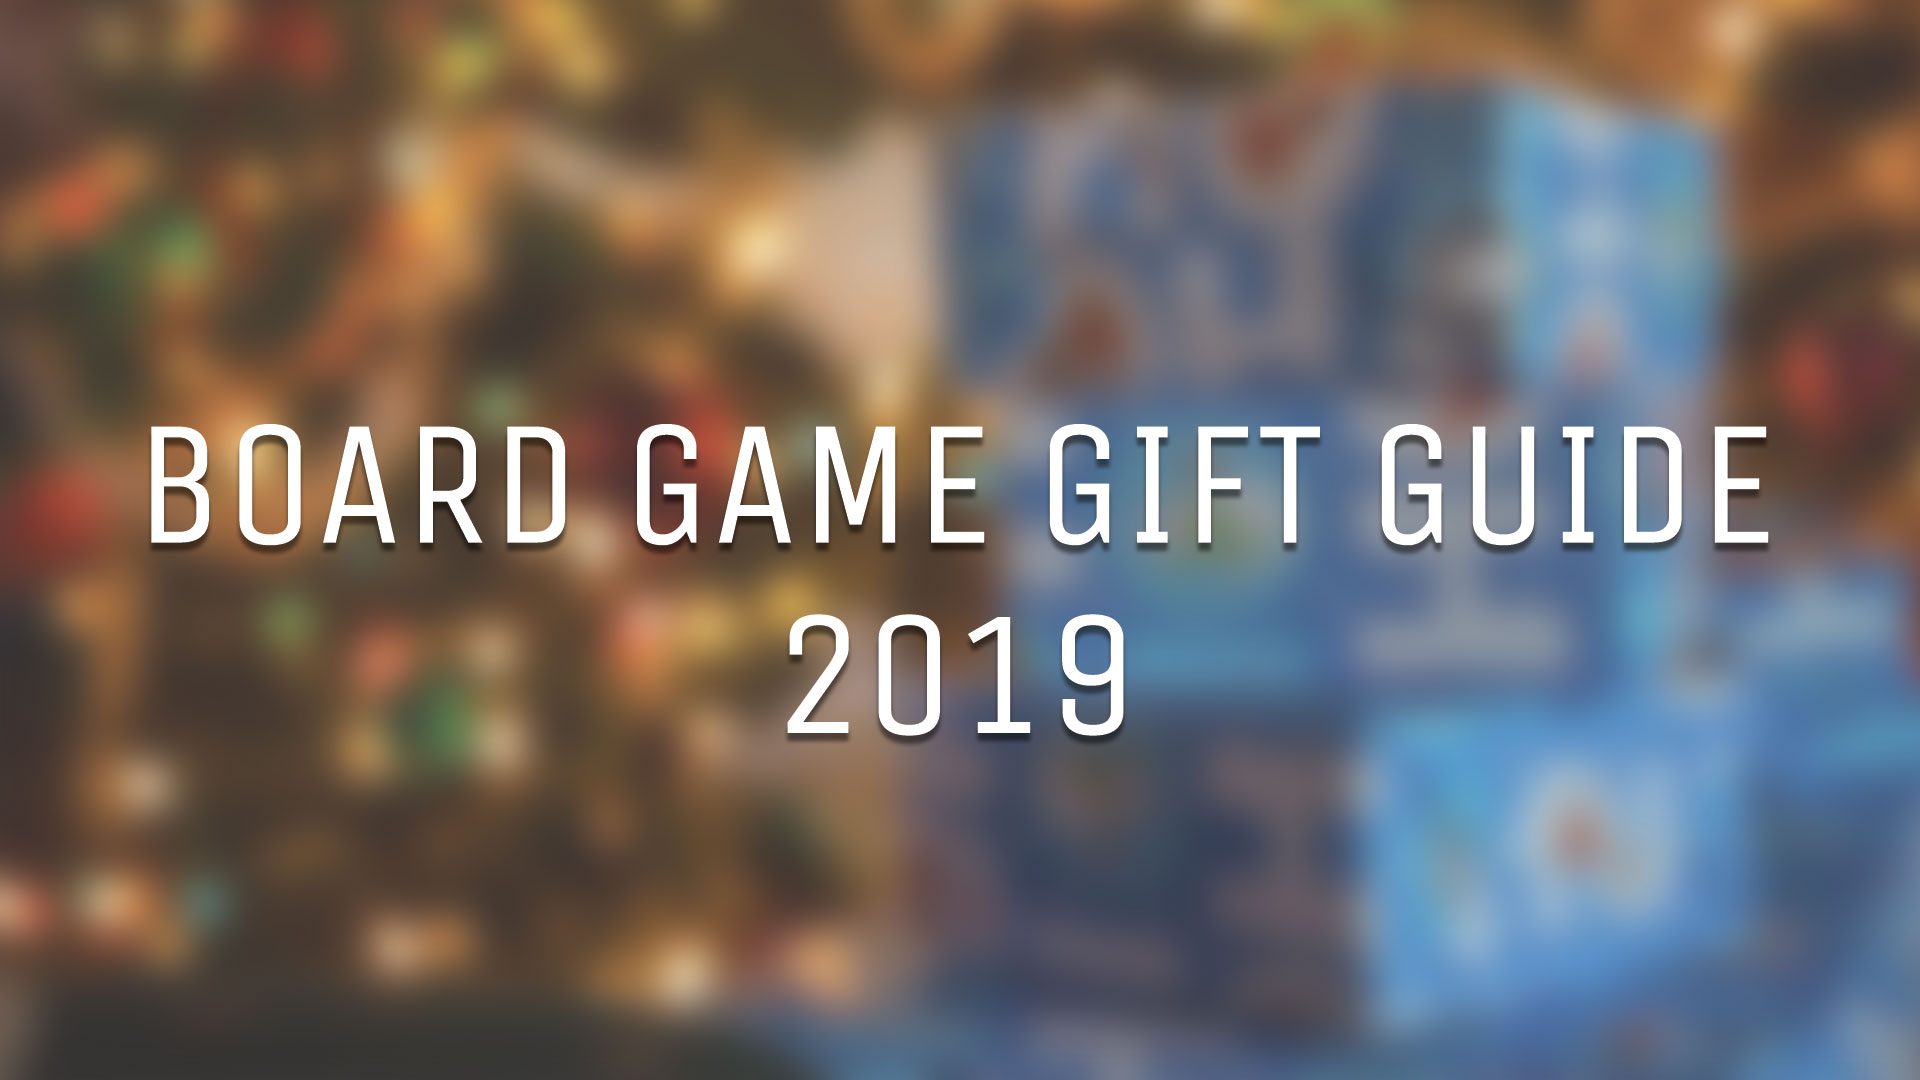 The Rook Room Board Game Gift Guide 2019 Header Graphic